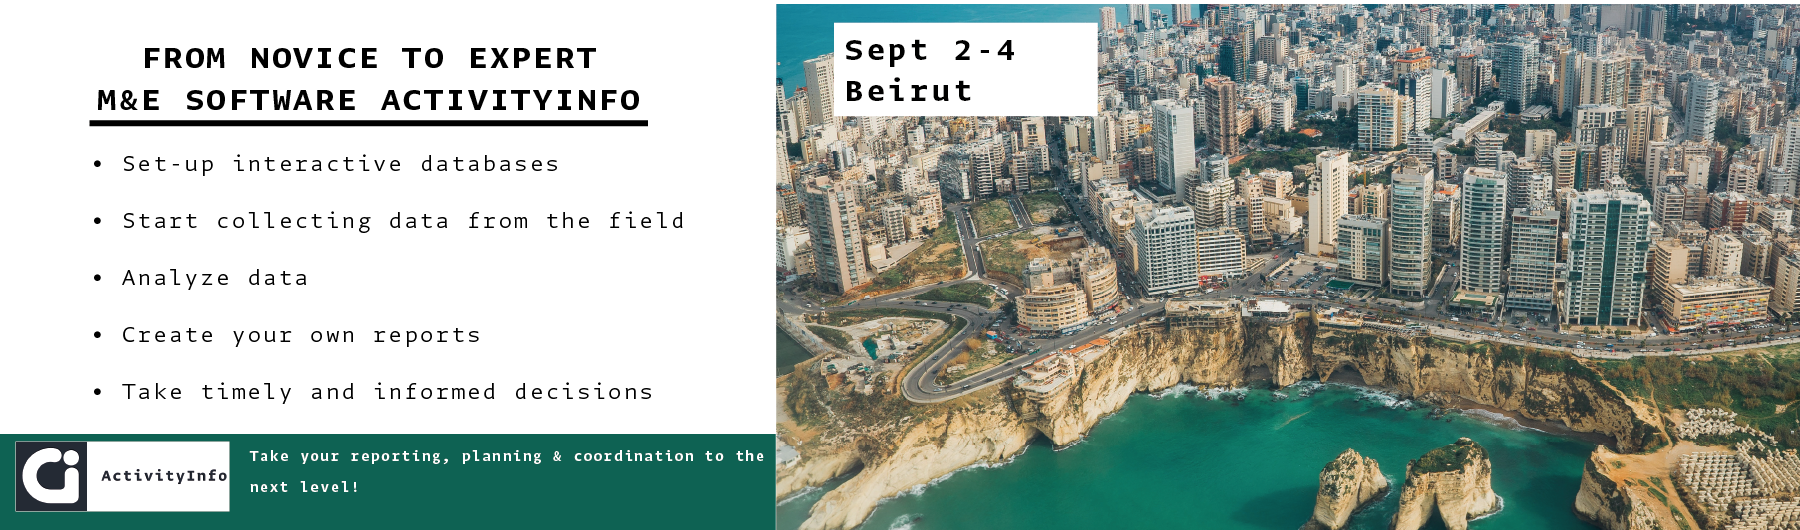 2nd-3rd-4th September 2019 - Beirut Training